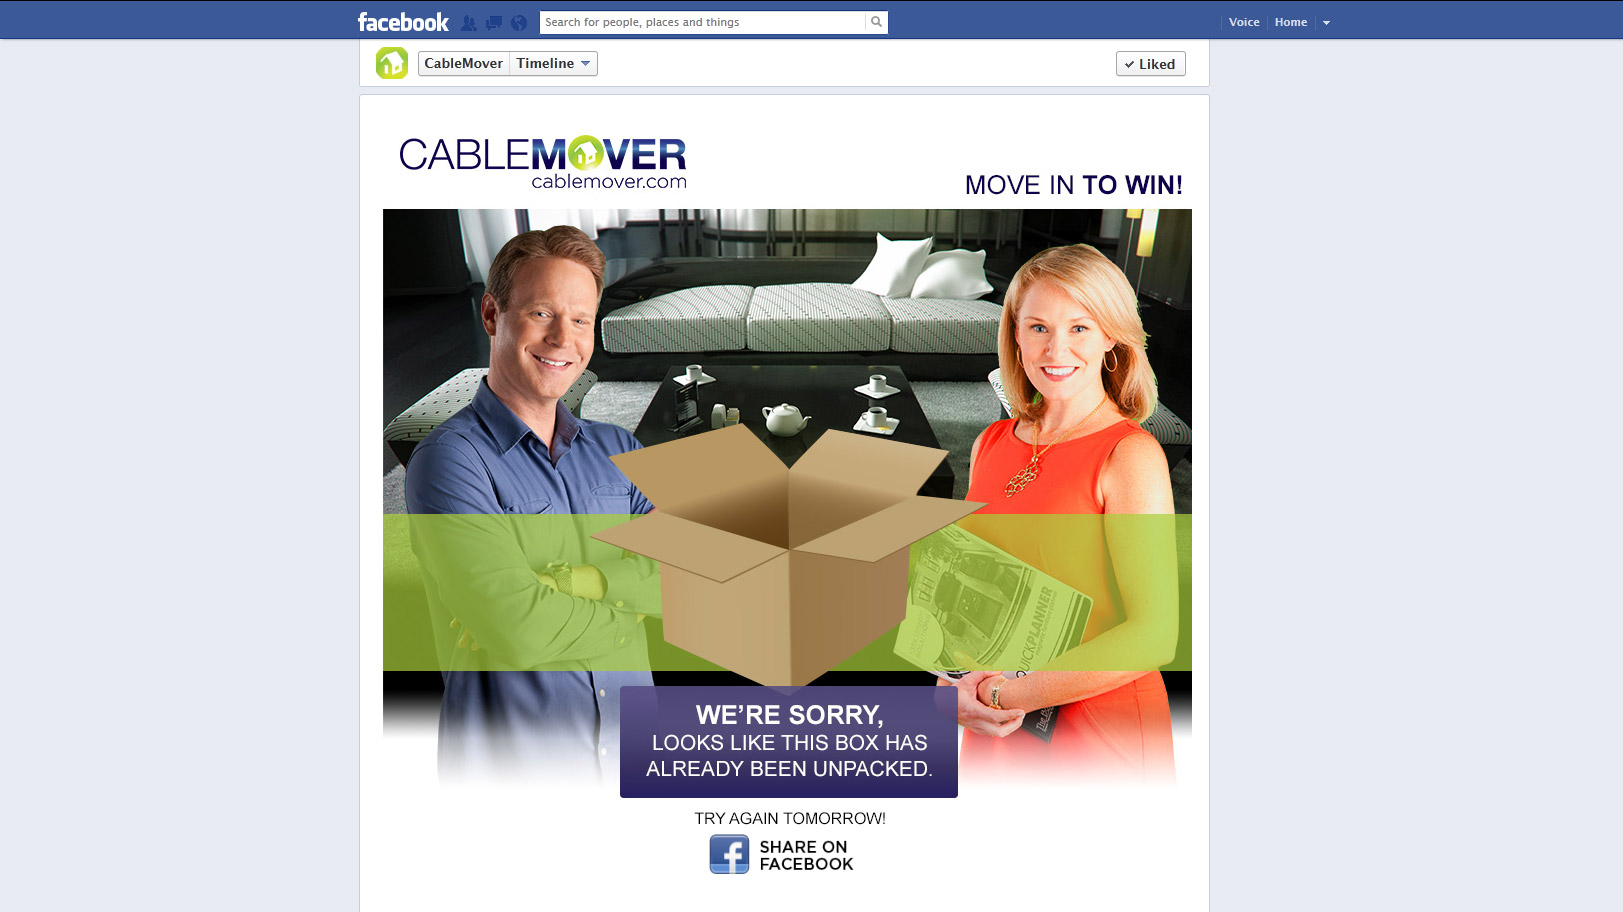 Cable Mover Move in to Win Sweepstakes